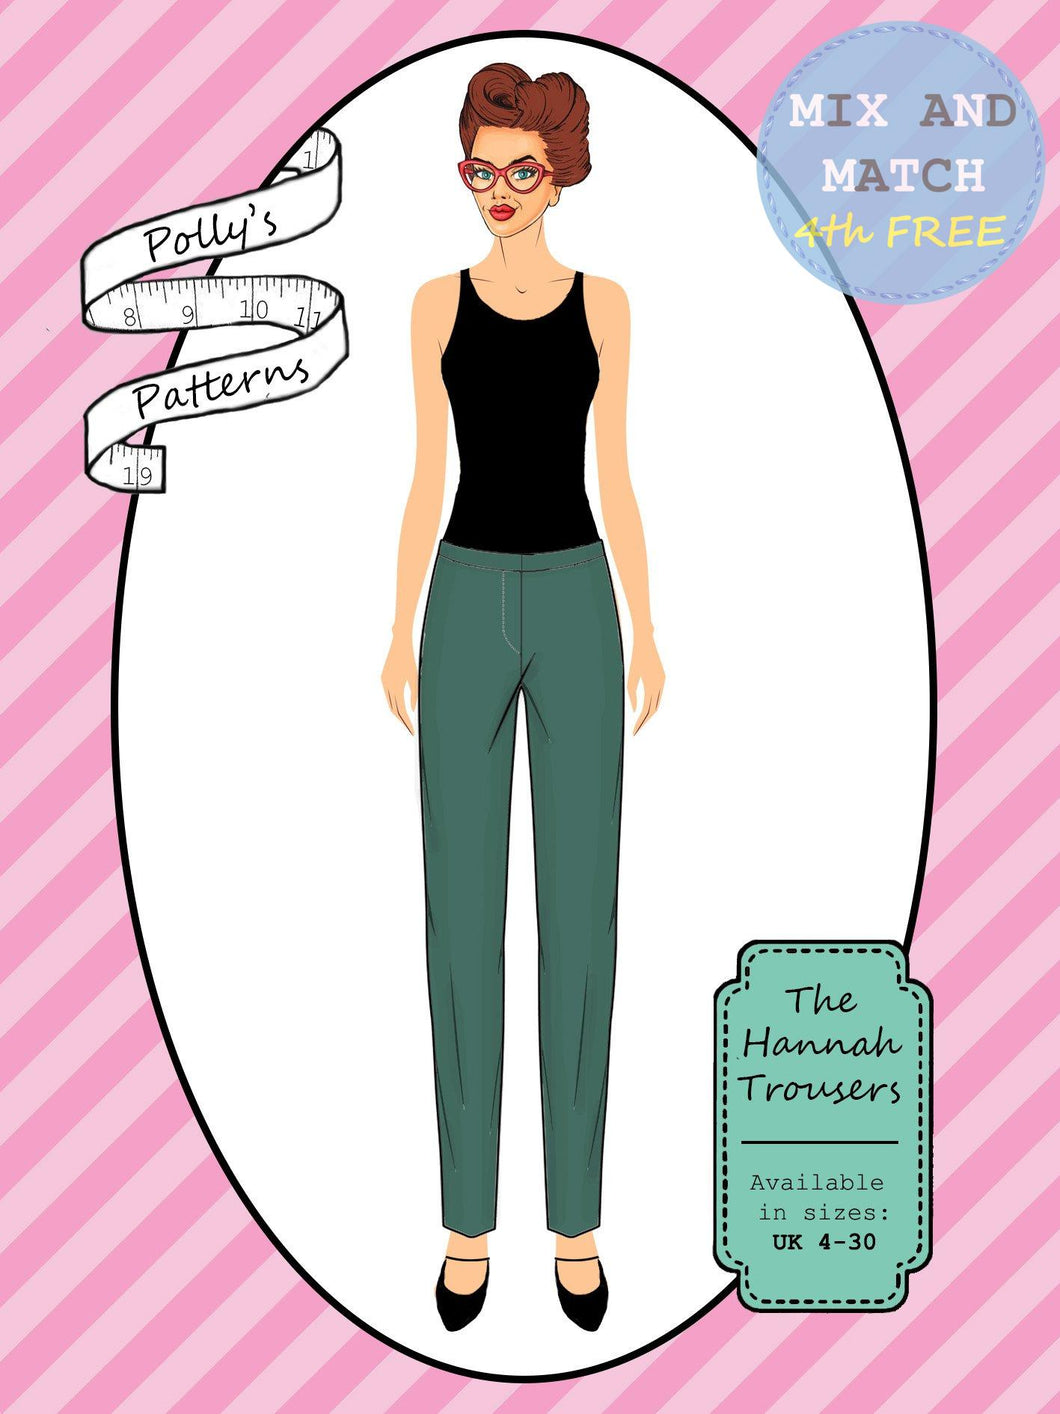 Polly's patterns - The Hannah Trousers - Pattern Shop